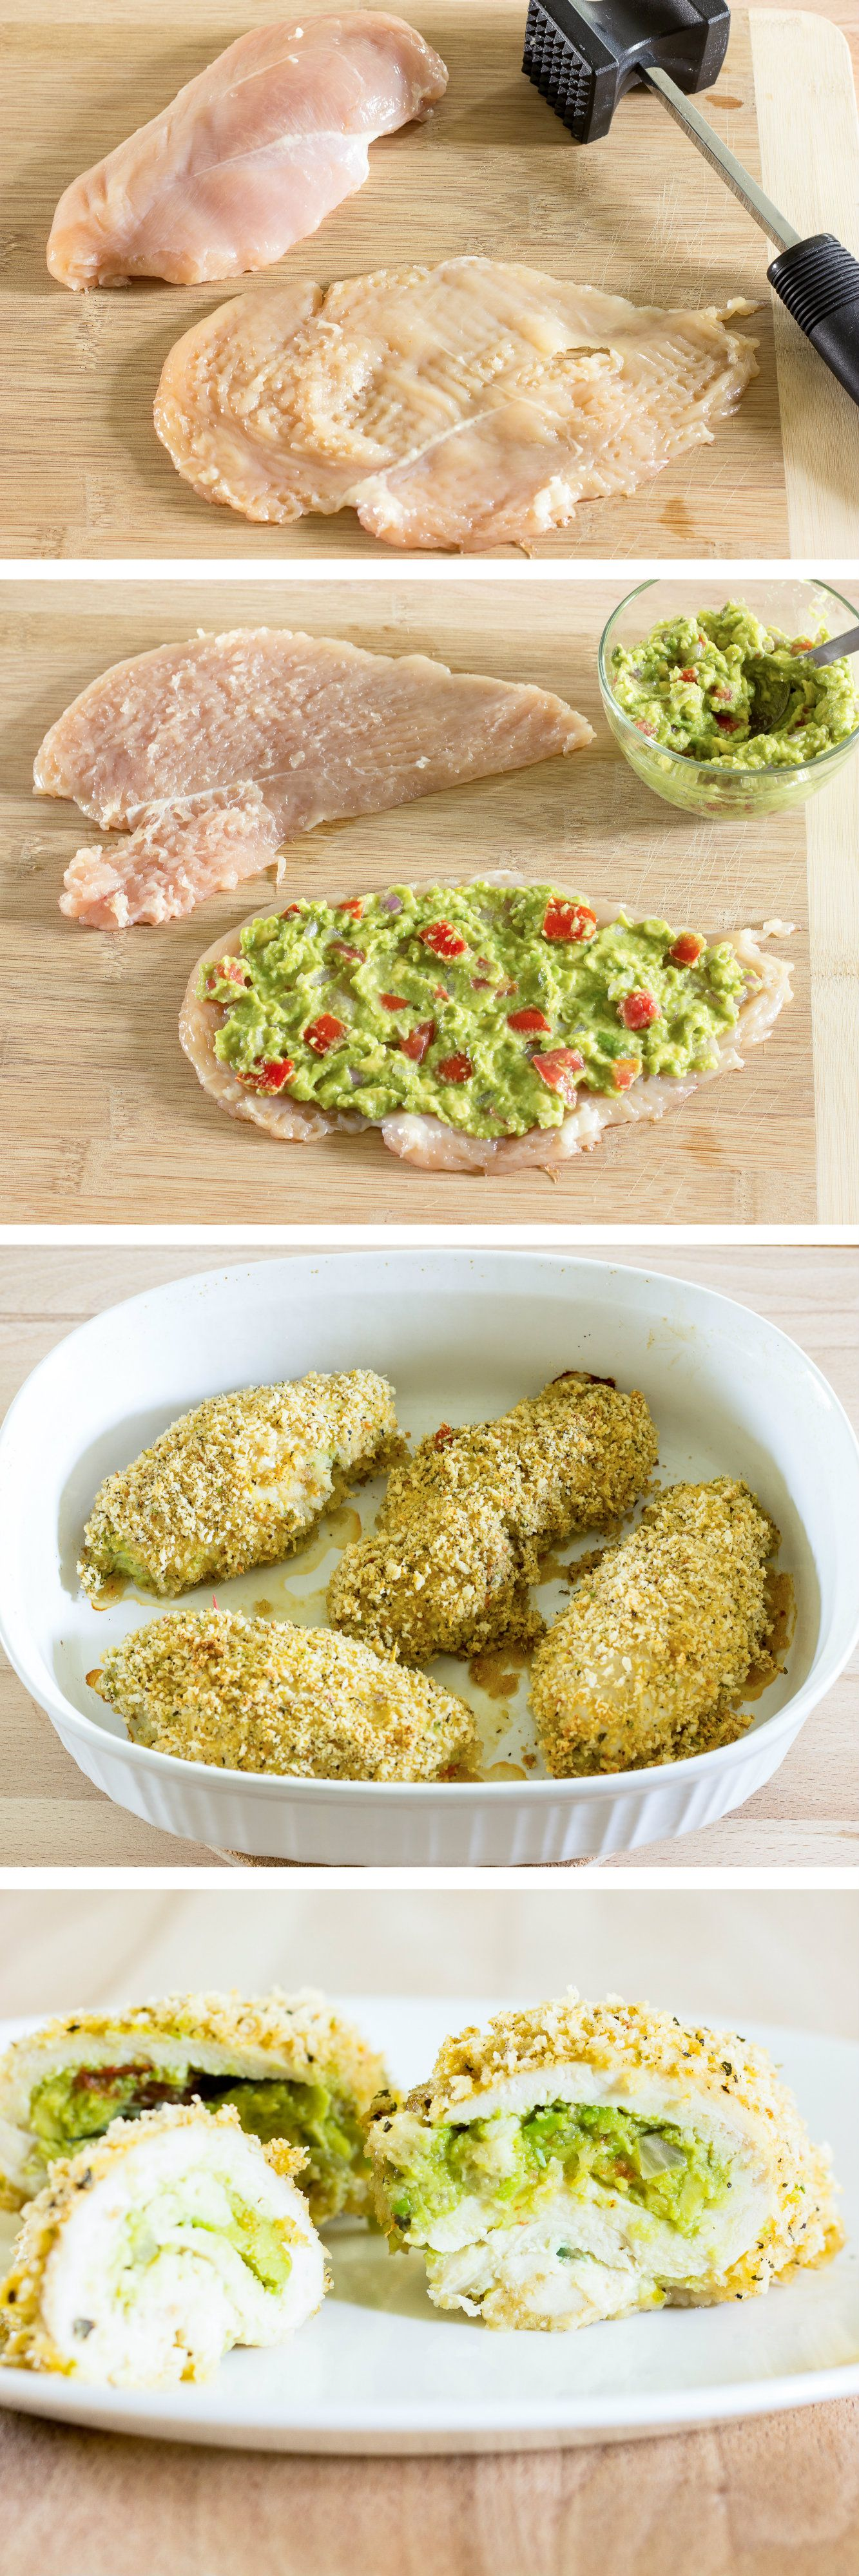 Photo of Beste Avocado-Rezepte